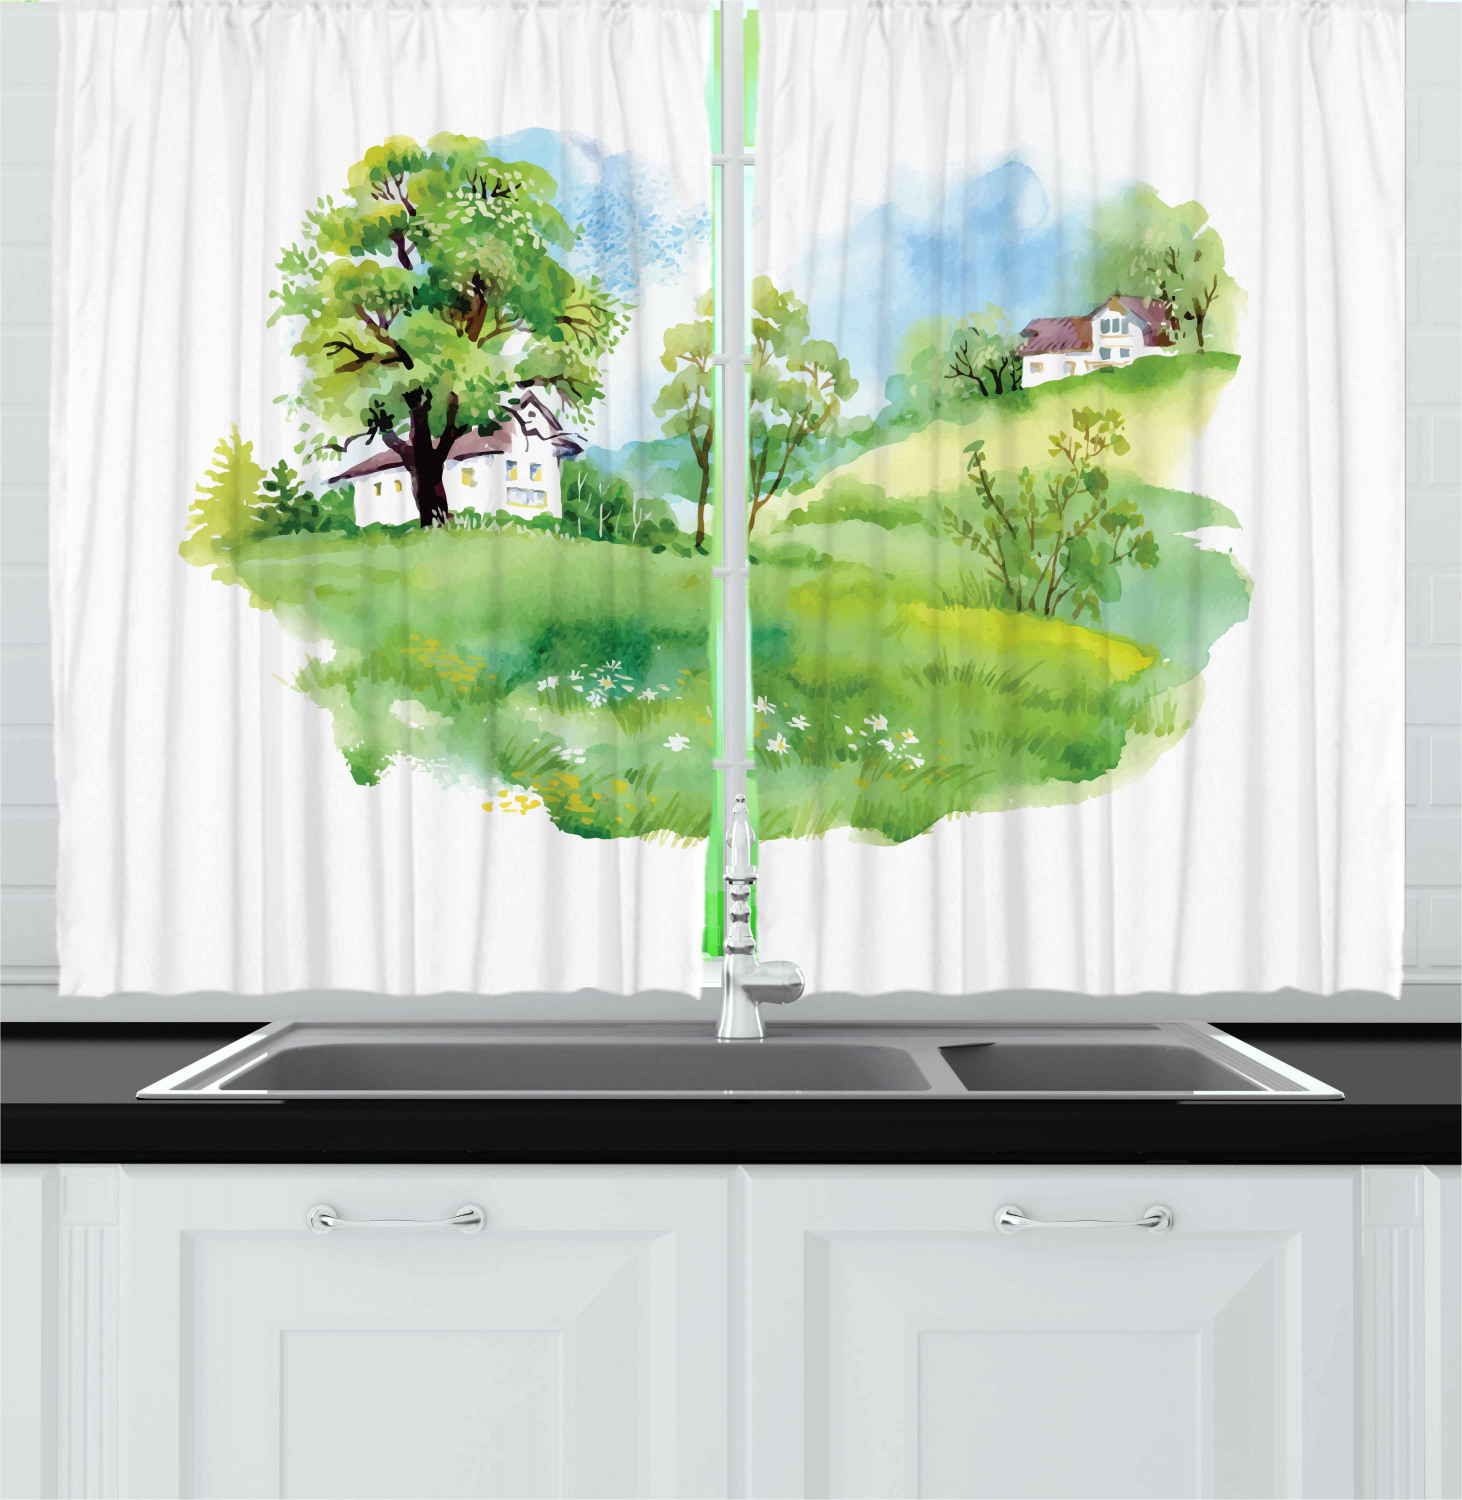 Fabric For Kitchen Curtain: Urban Fabric Kitchen Curtains 2 Panel Set Window Drapes 55